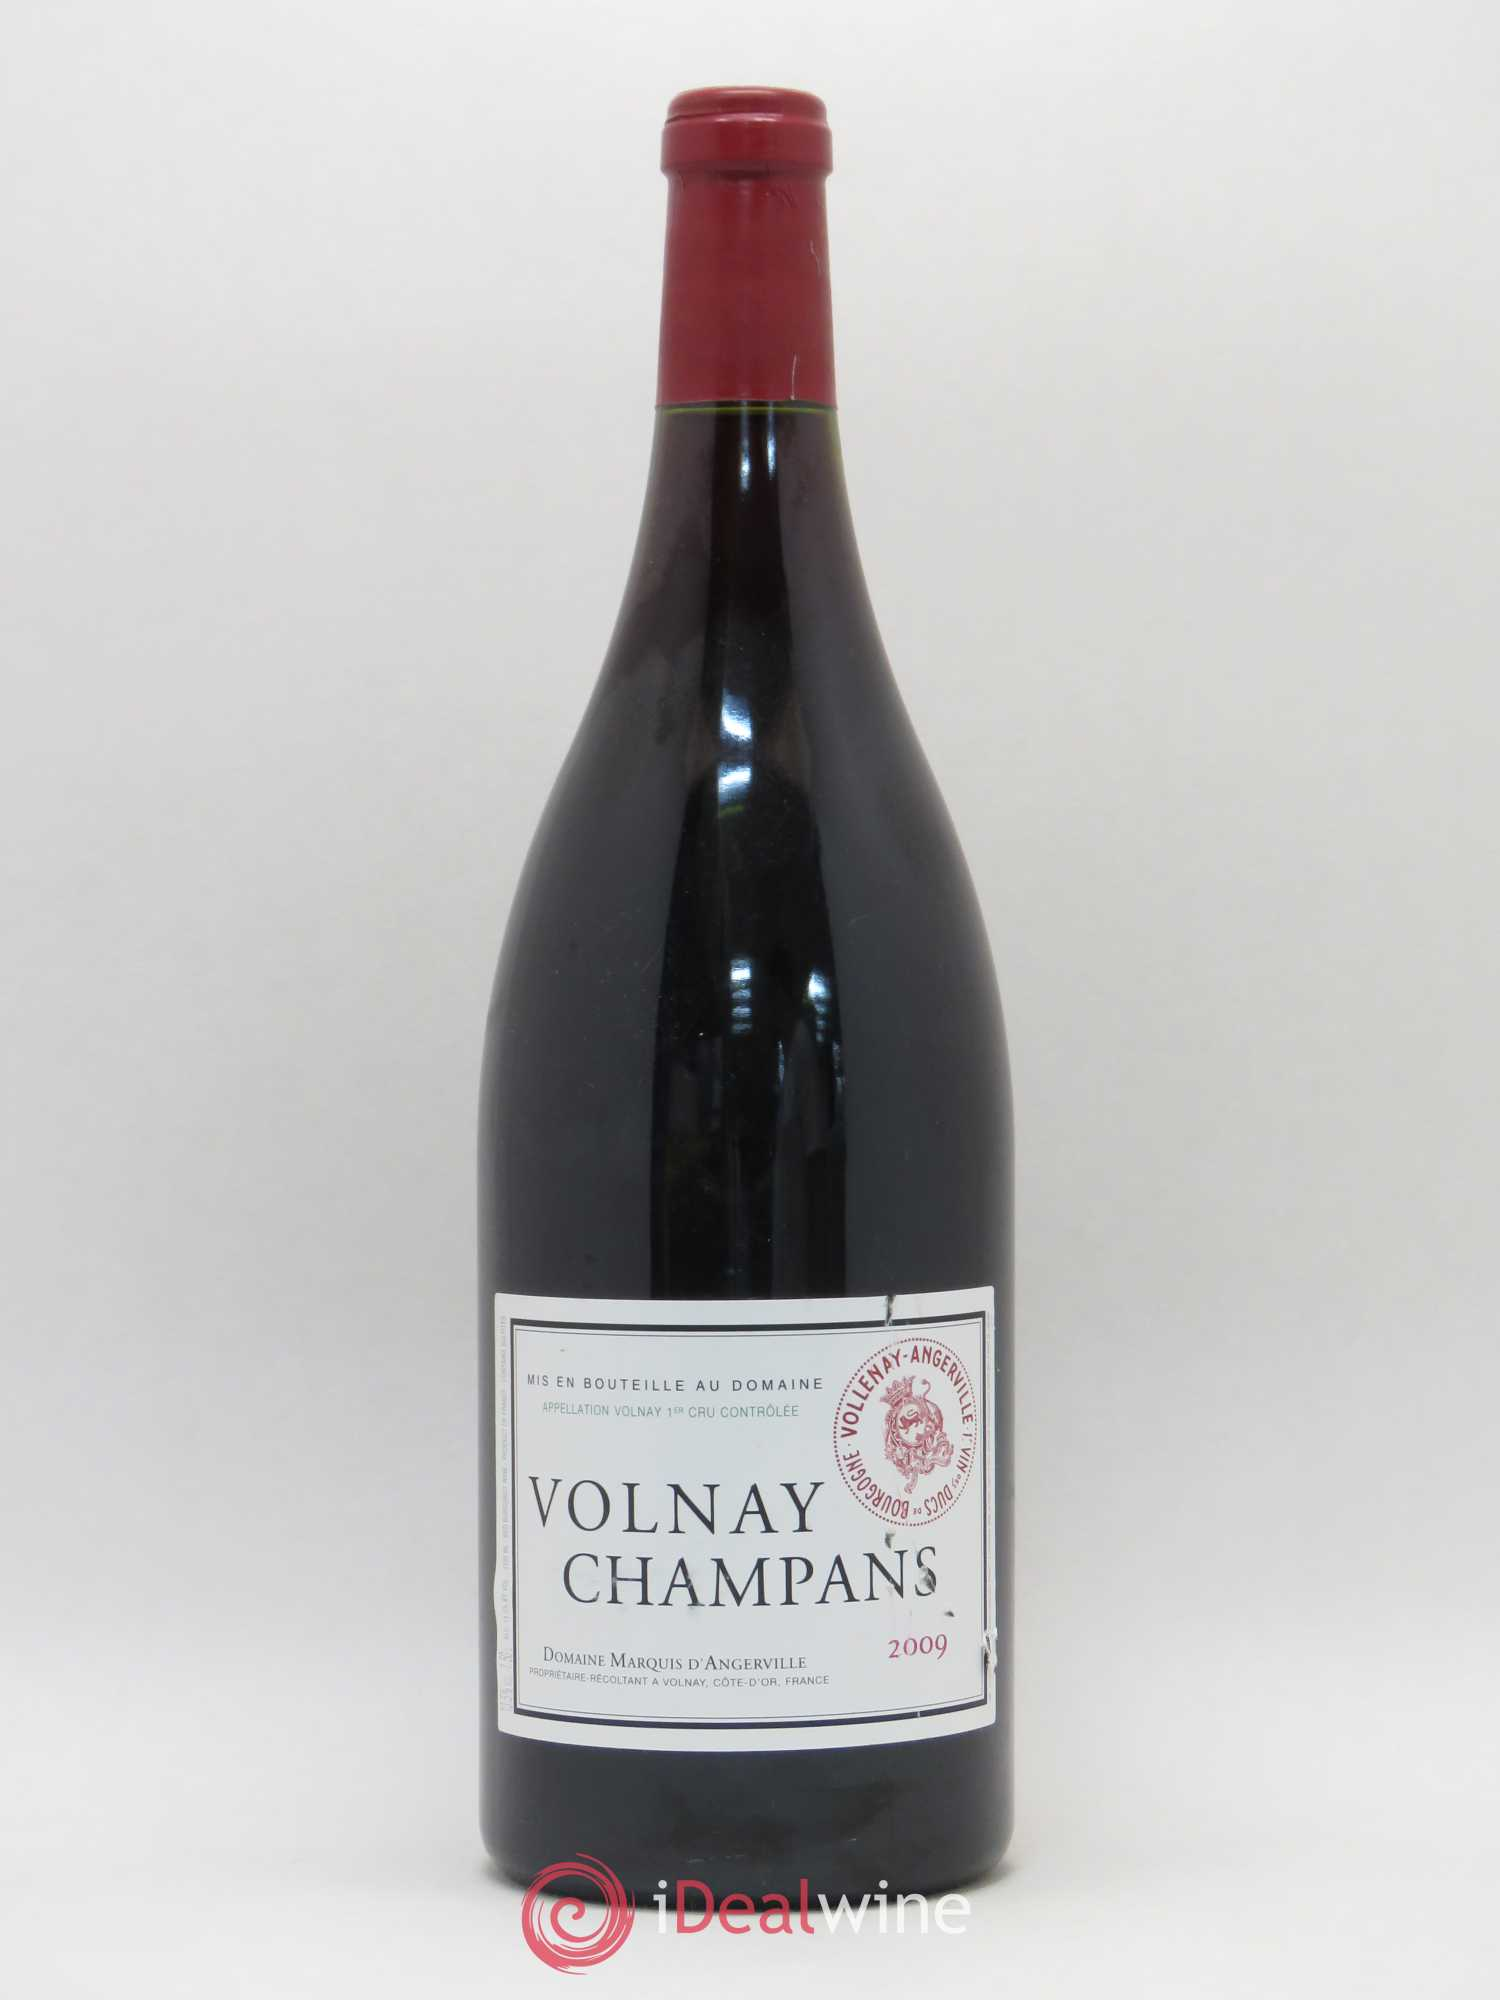 Volnay 1er Cru Champans Marquis d'Angerville (Domaine)  2009 - Lot of 1 Magnum